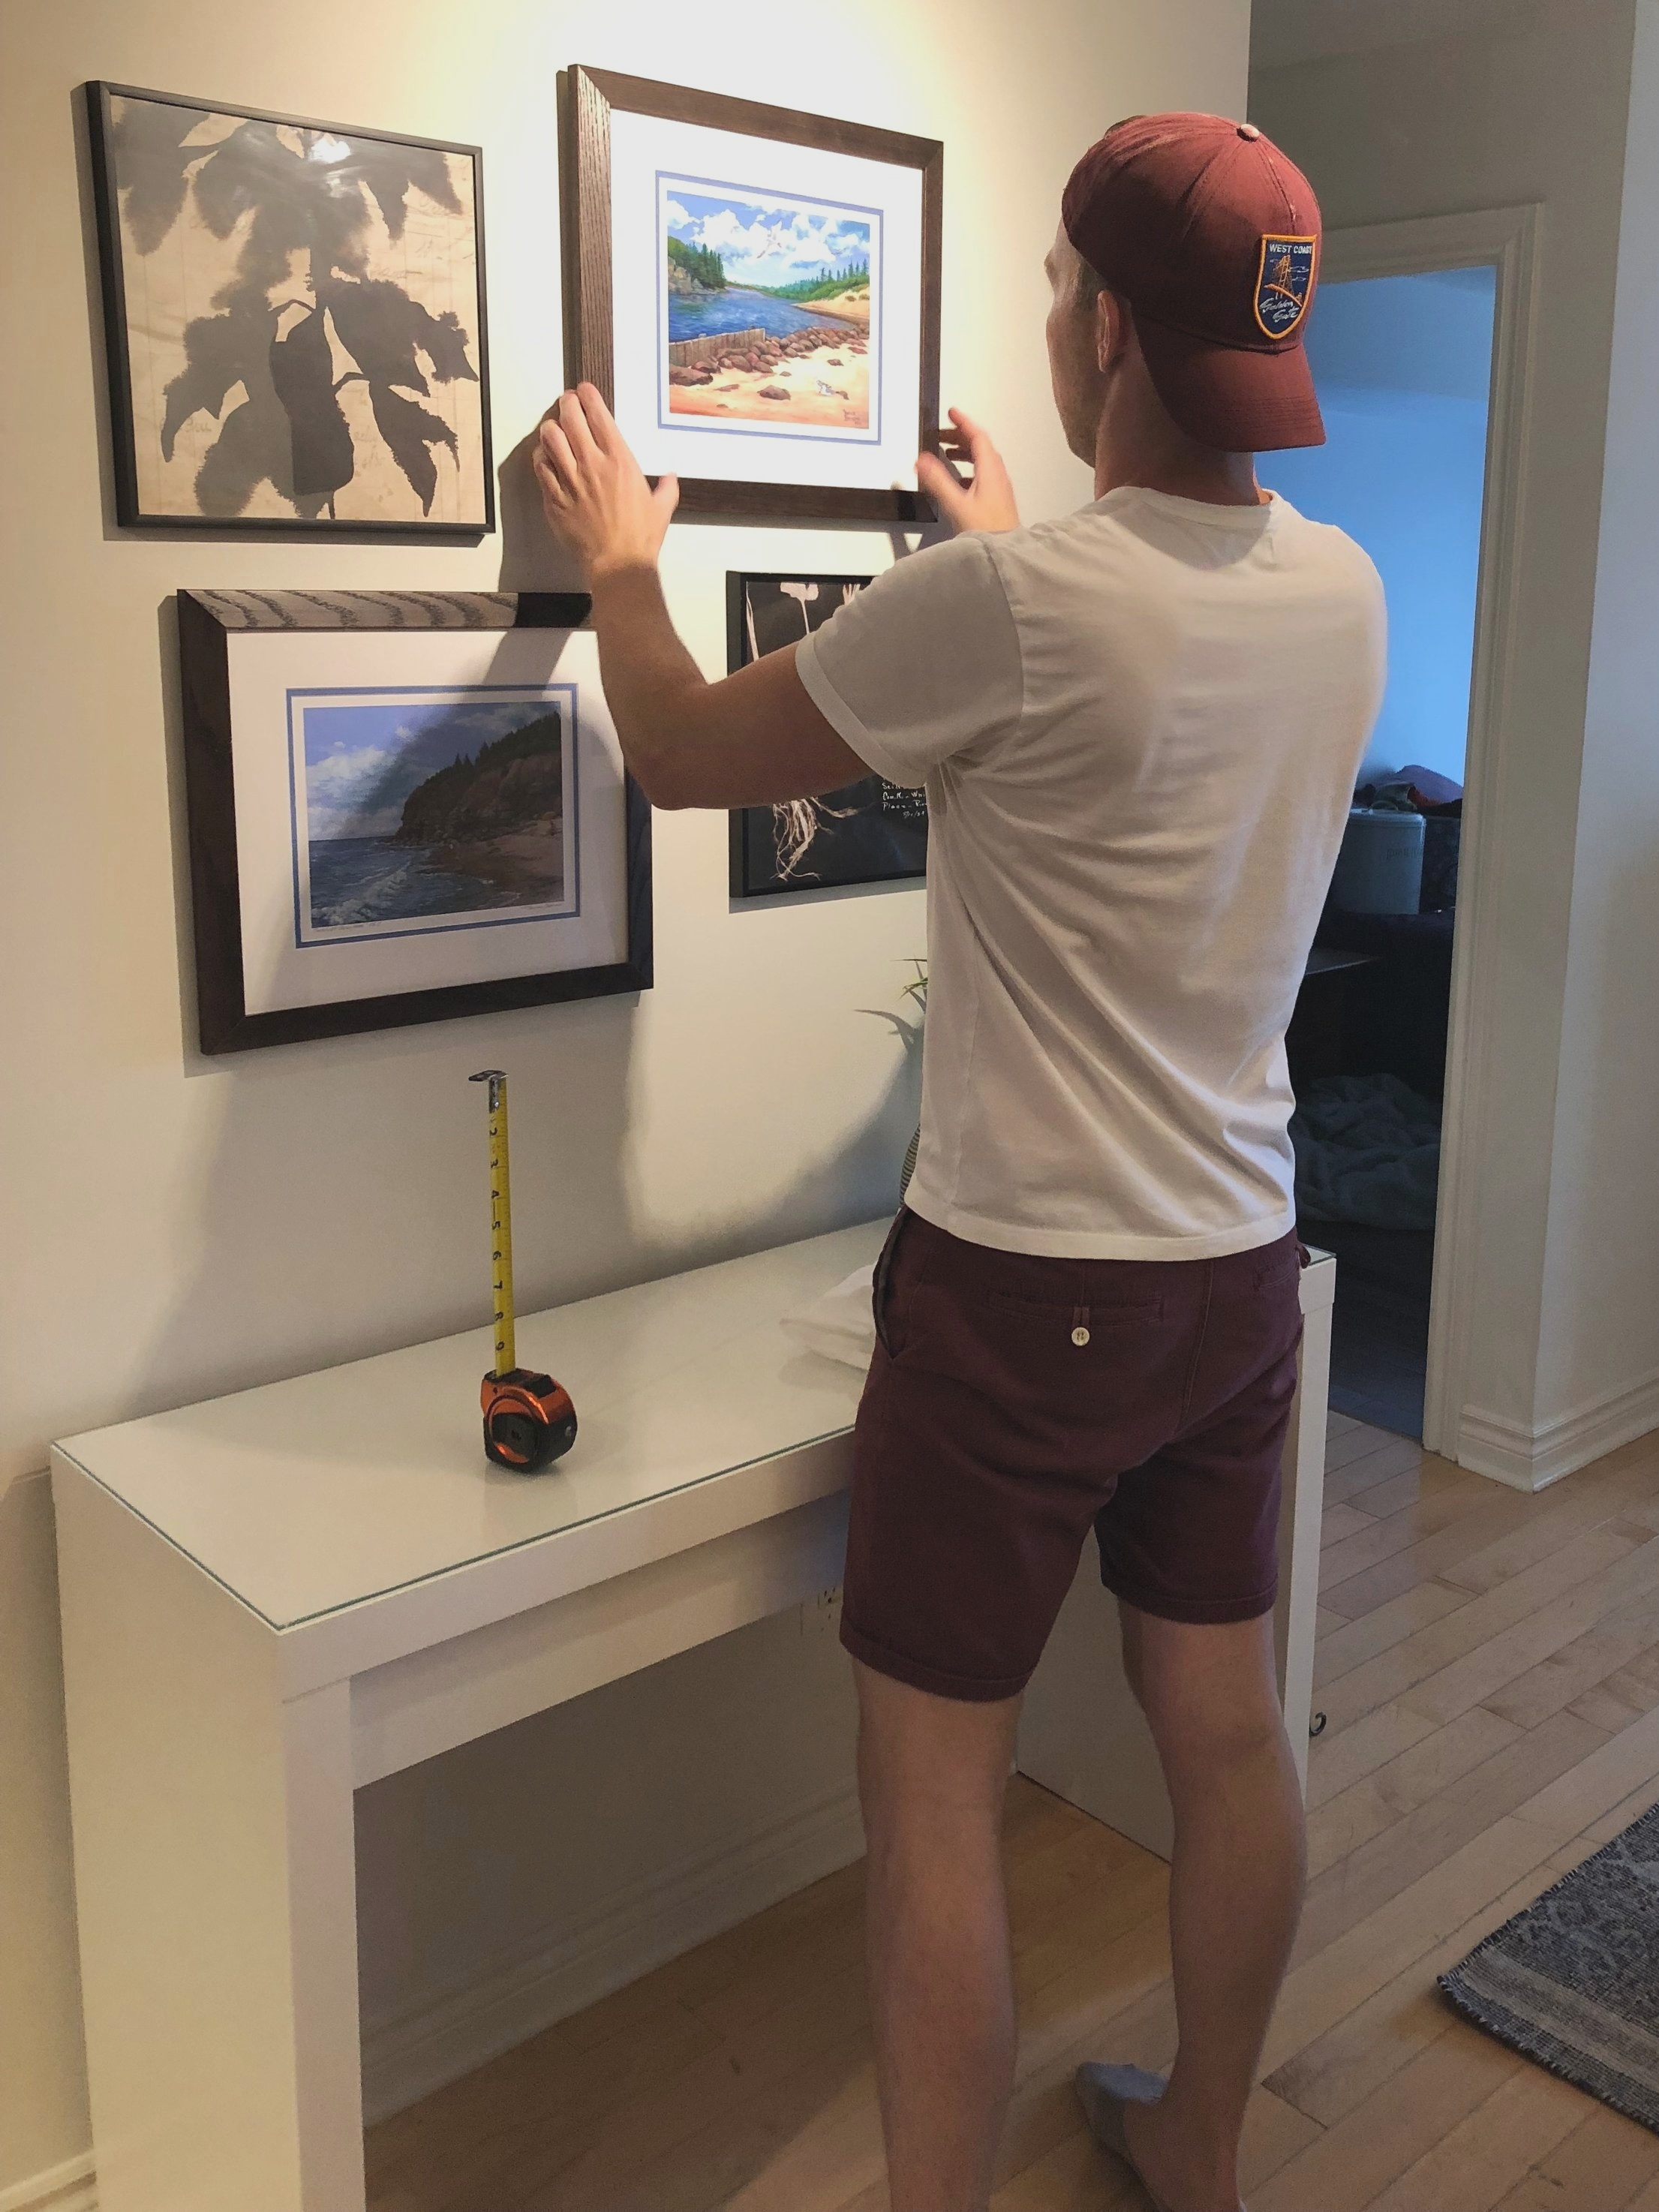 Hanging a gallery wall over the new desk area. This is going to be the perfect spot for the contest winners to work from home.